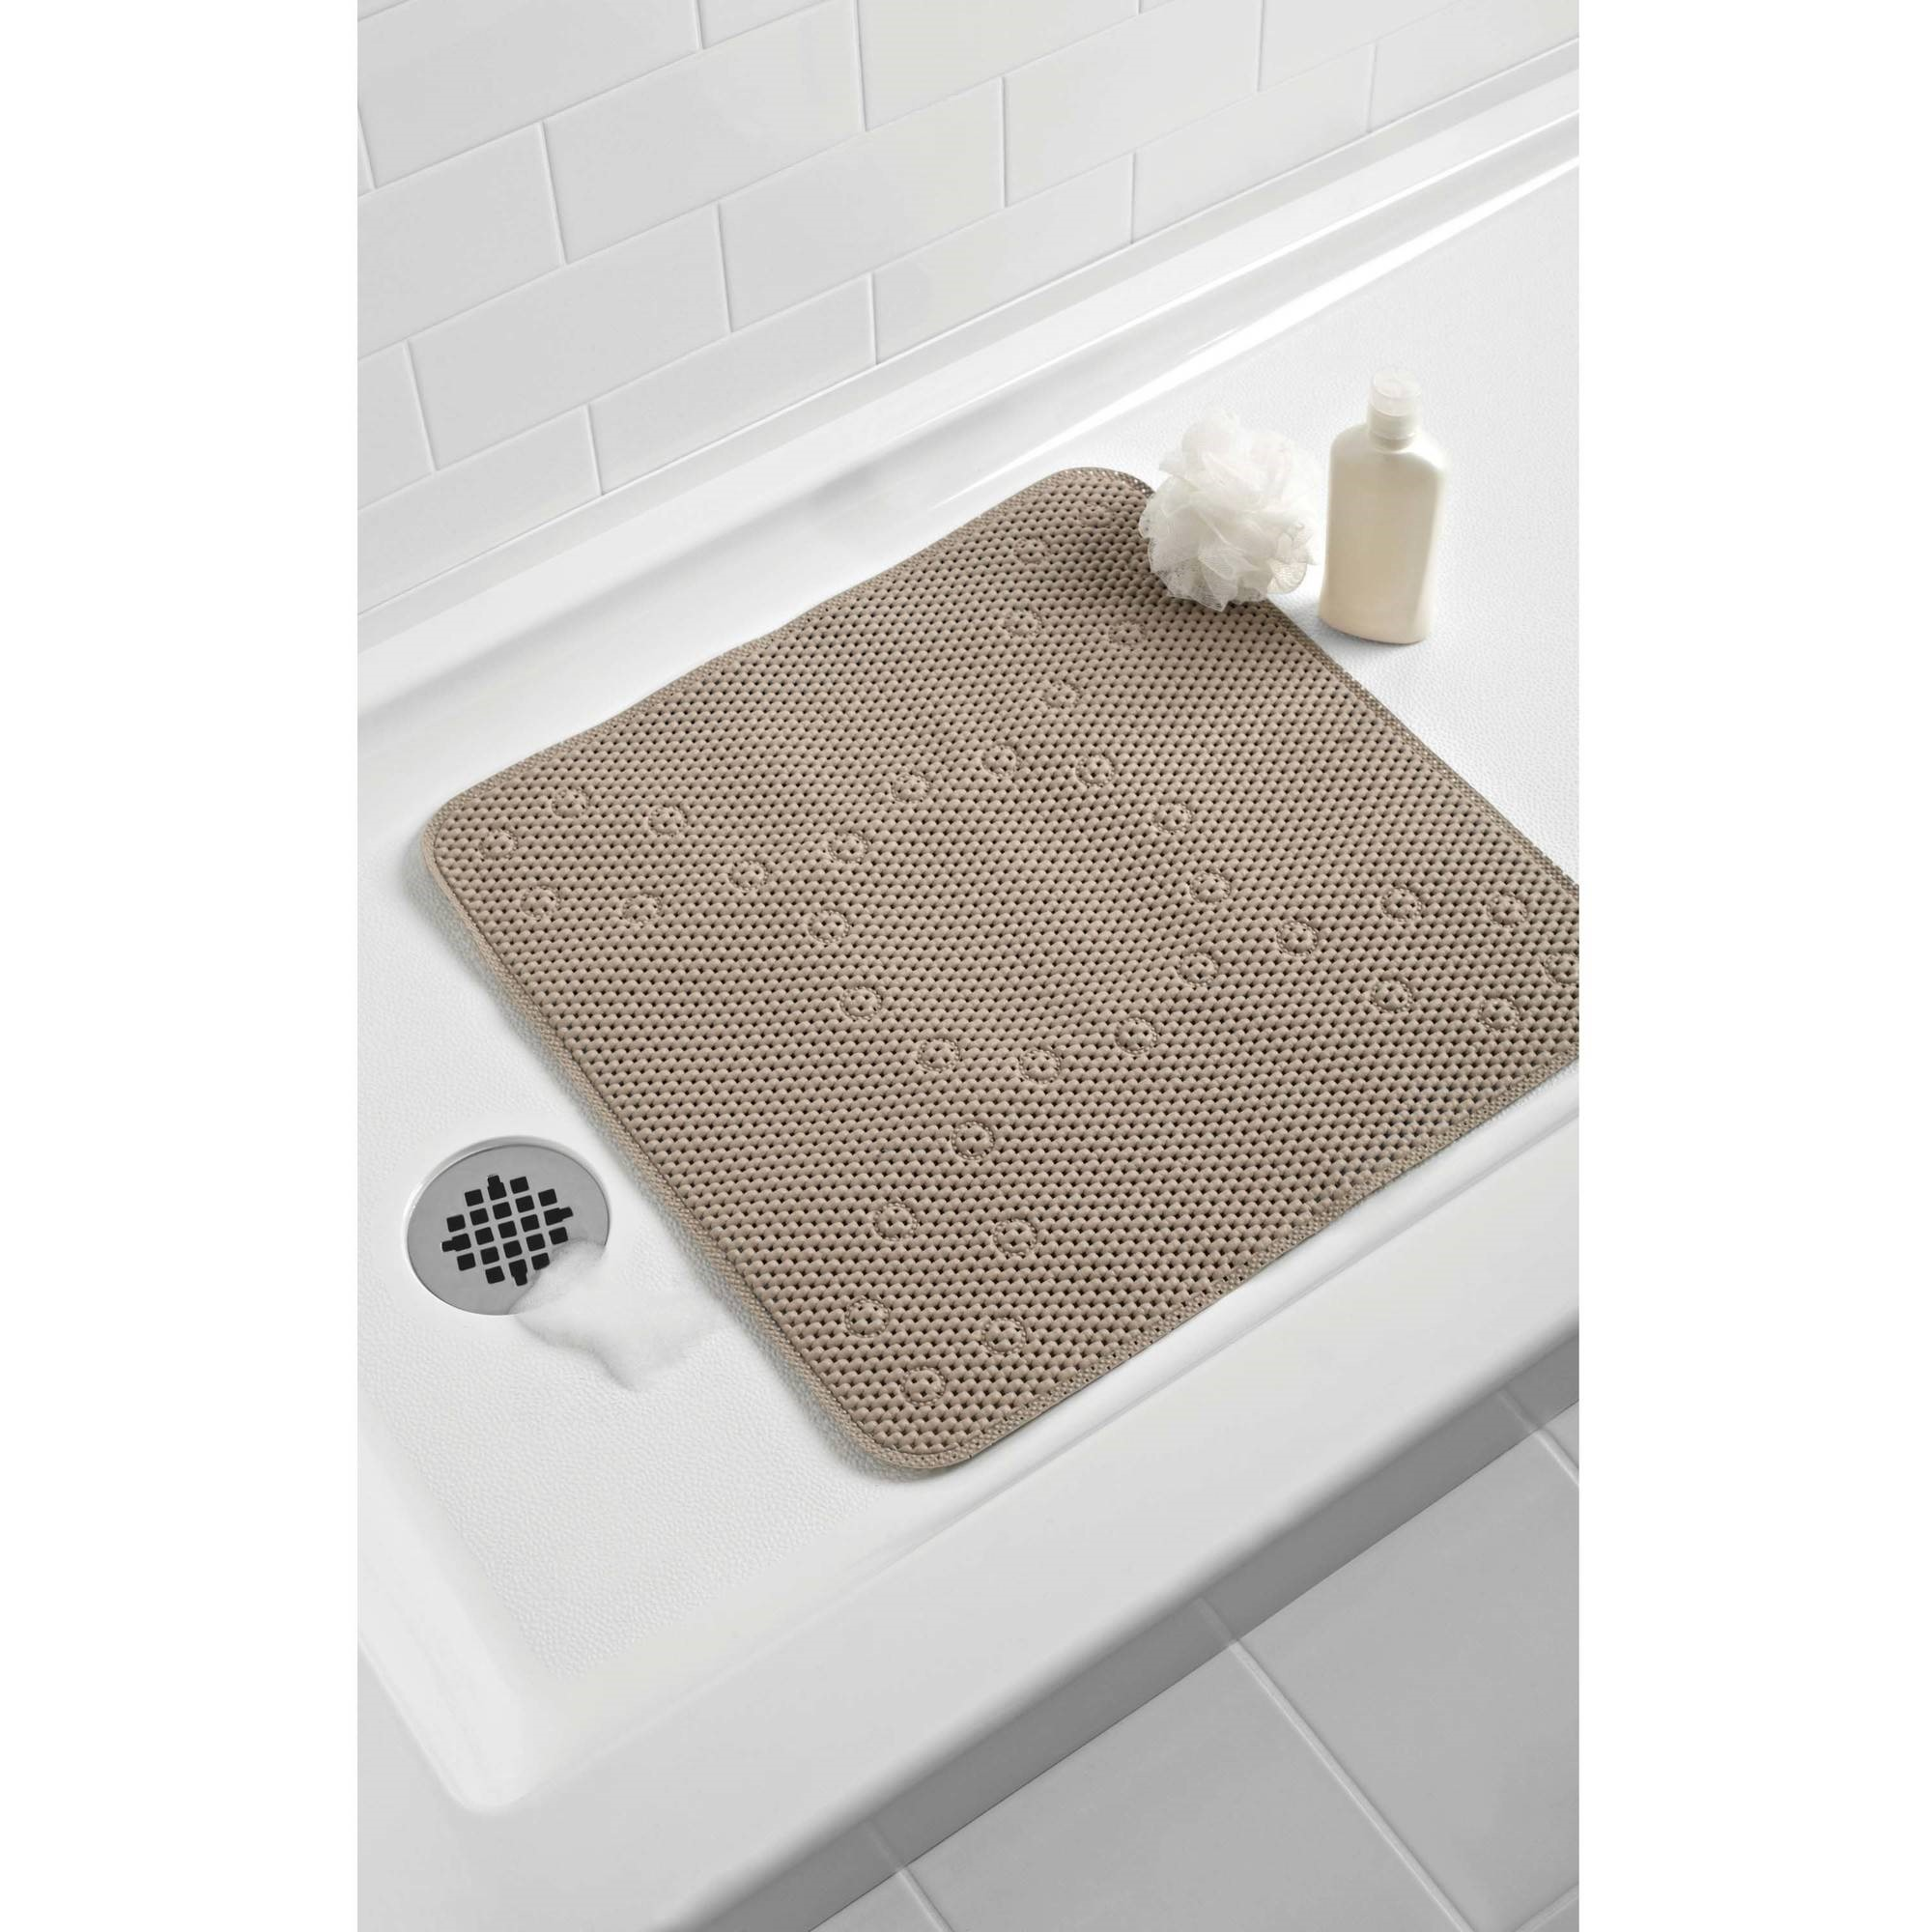 Mainstays 21 In. x 21 In. Cushioned Shower Mat, Taupe